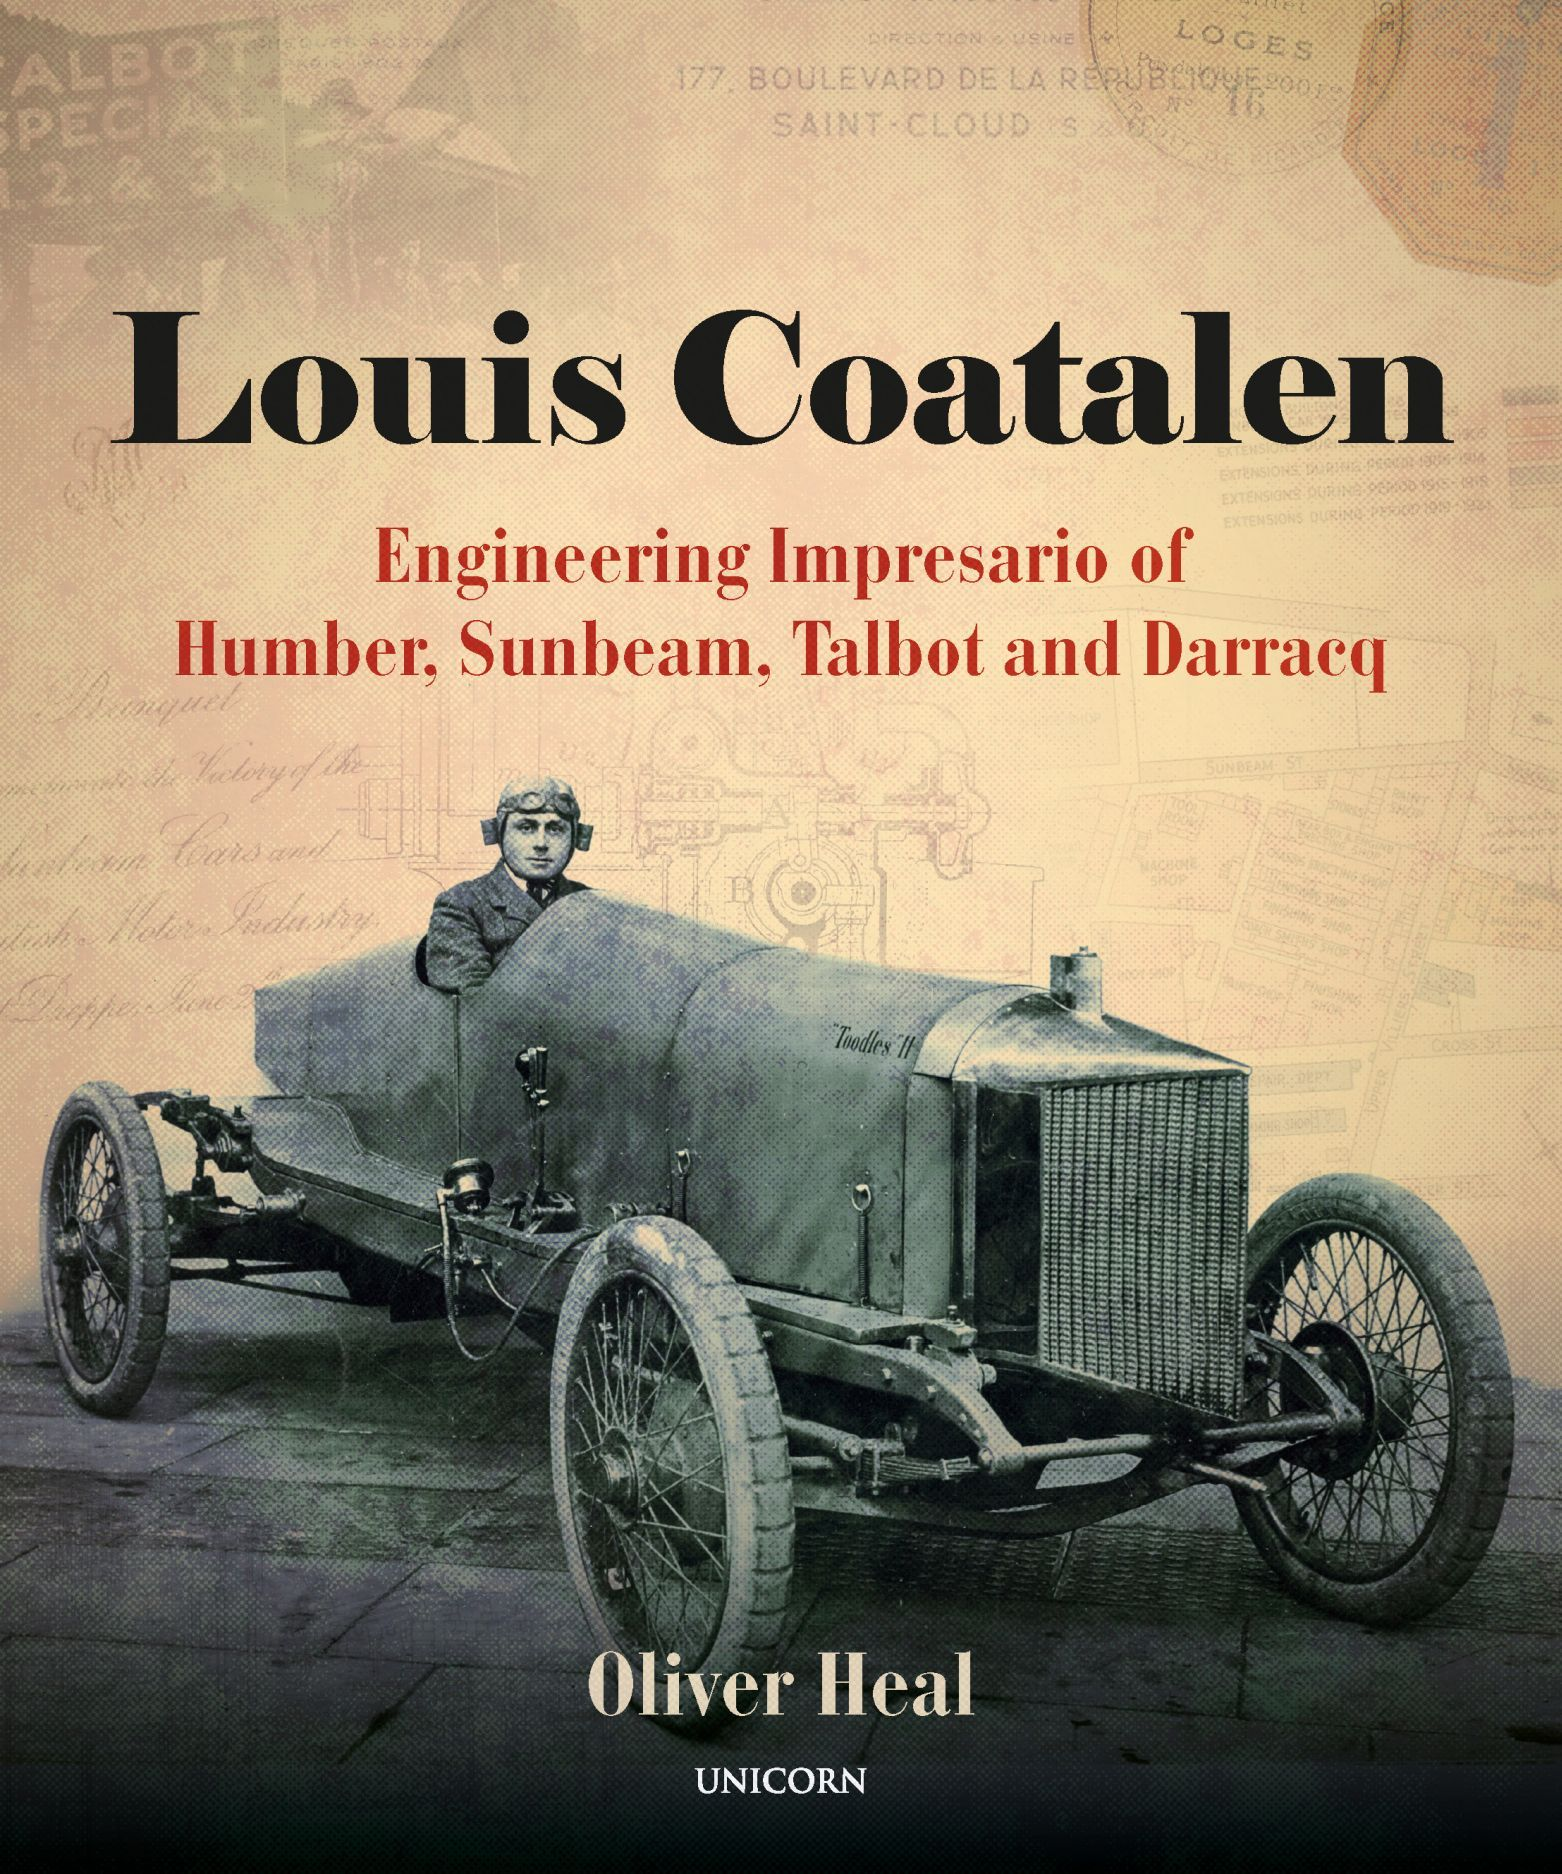 Louis Coatalen: Engineering Impresario of Humber, Sunbeam, Talbot and Darracq